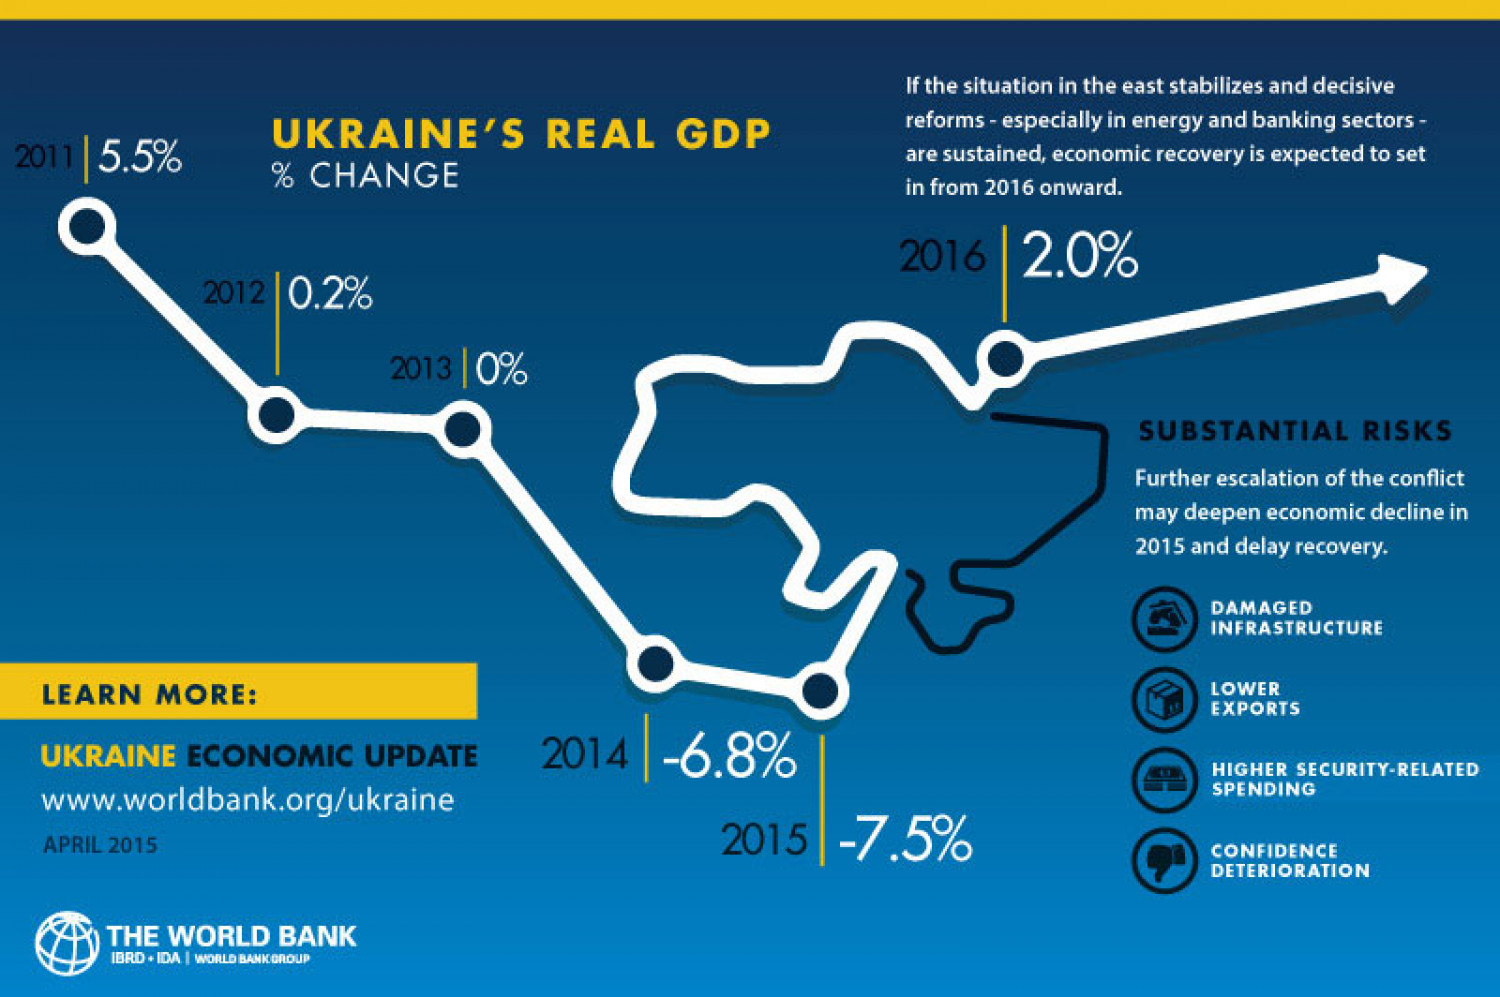 Ukraine Economic Update Infographic